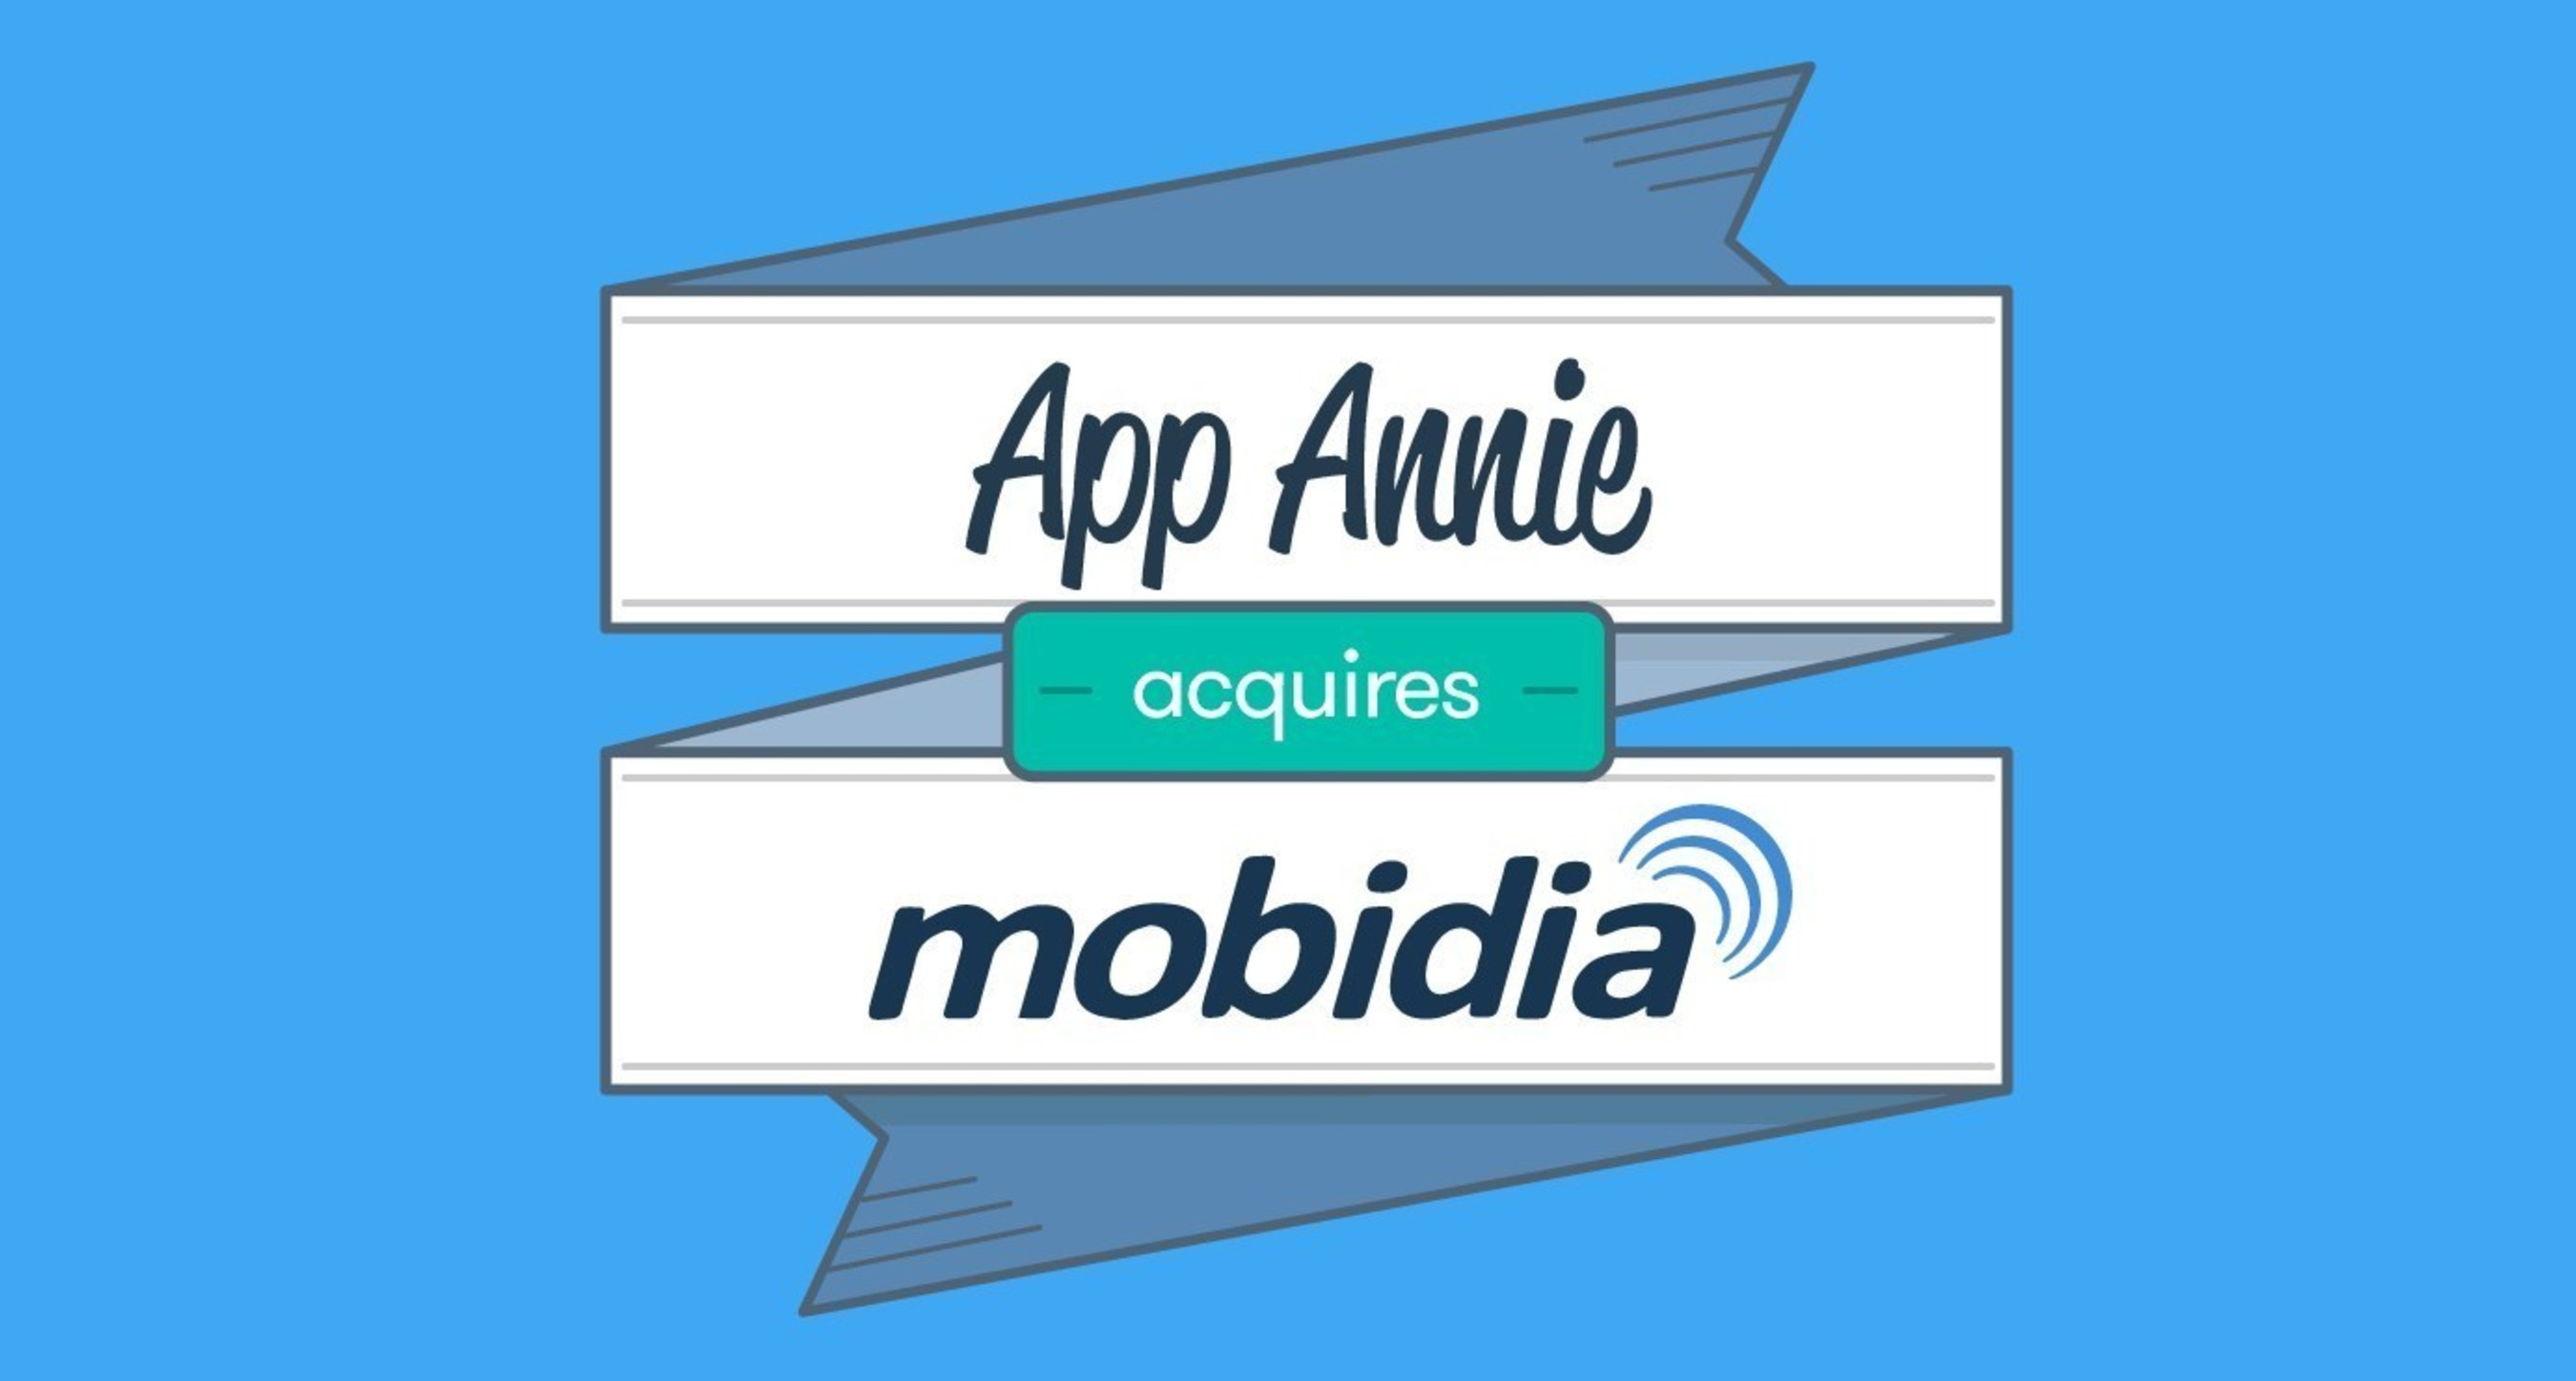 App Annie Acquires Mobidia, Cements Leadership Position in Global Mobile App Usage Market Data